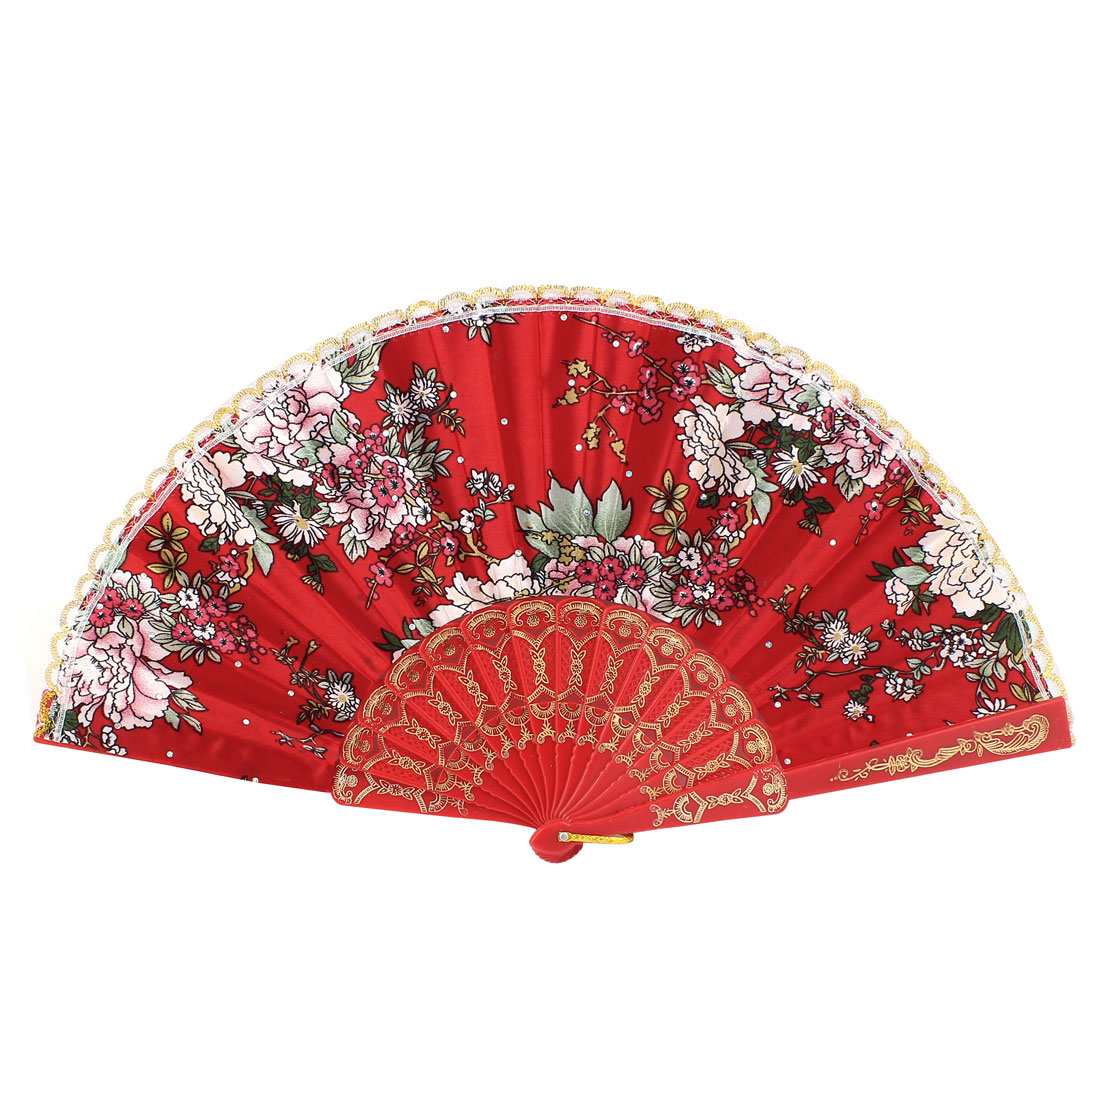 Lady Dancing Show Portable Carving Plastic Rib Floral Pattern Red Cloth Folding Hand Fan